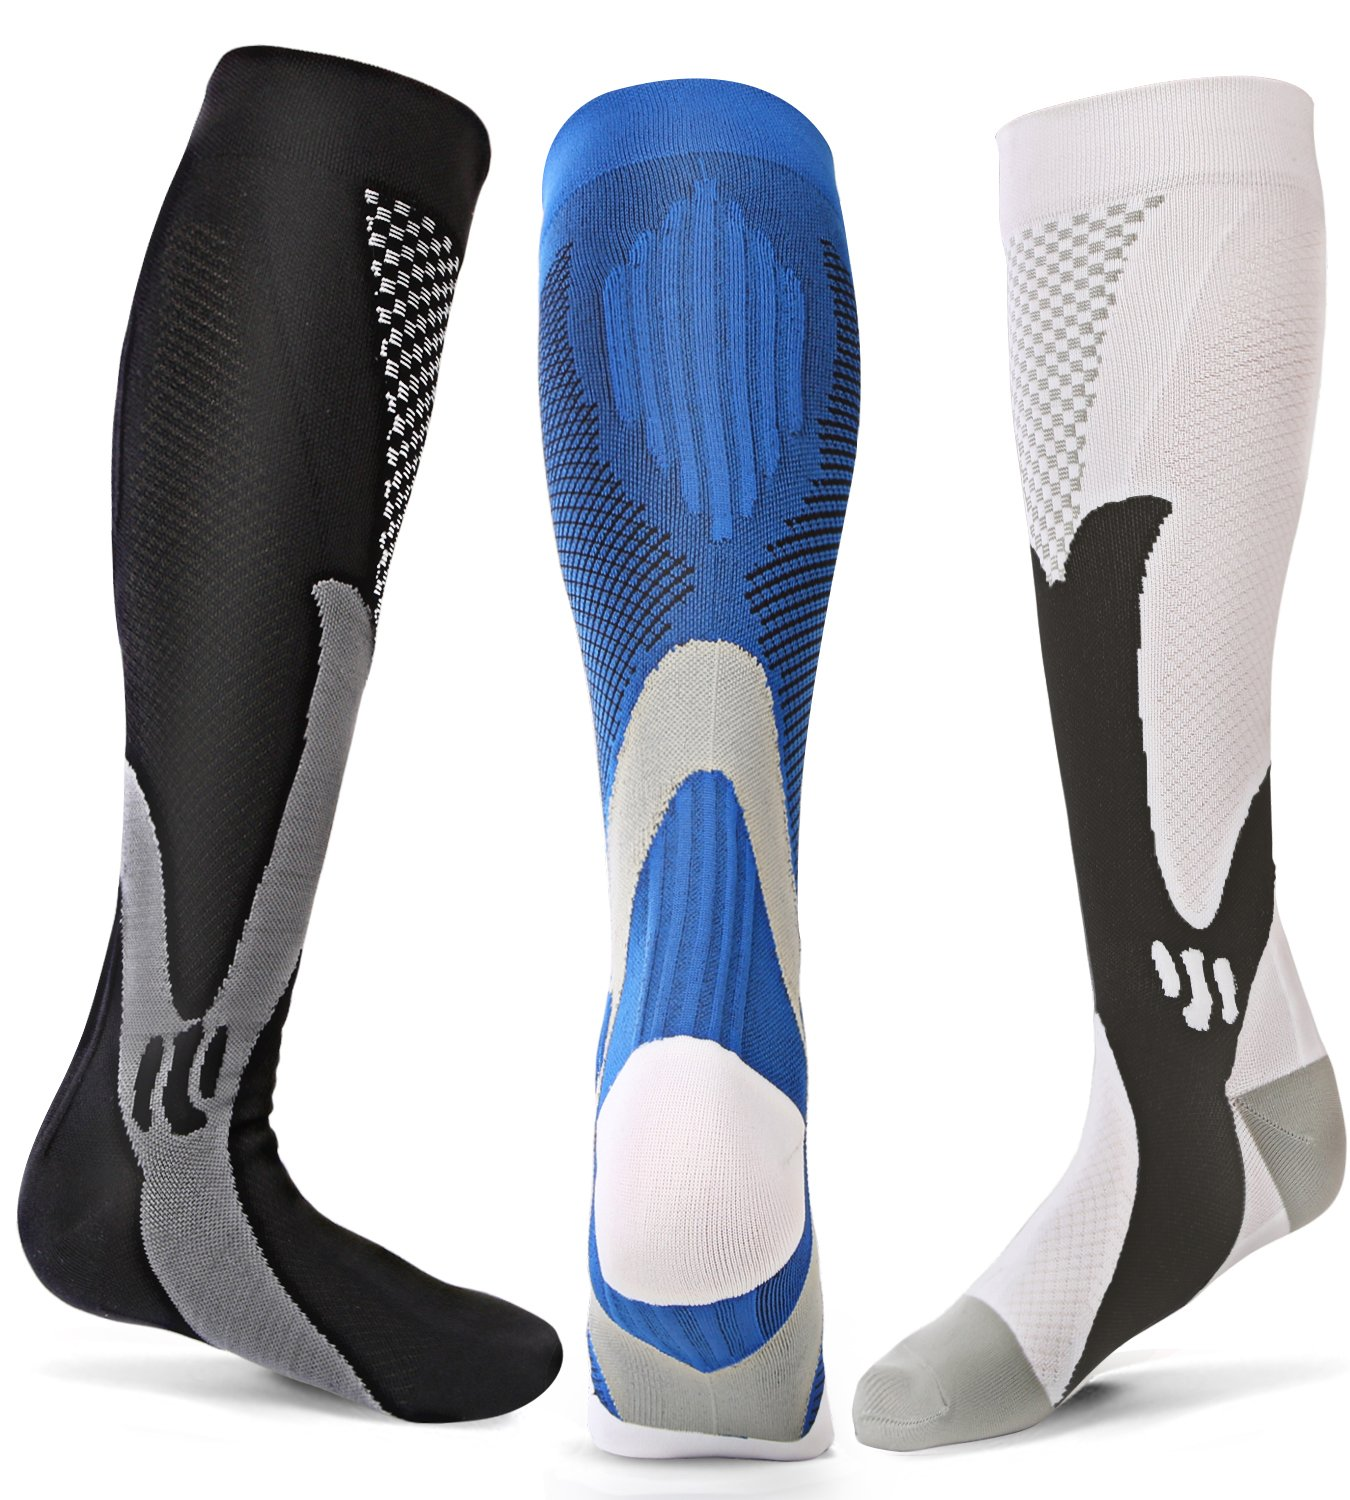 Men's Socks Hospitable Compression Socks Unisex Anti-fatigue Compression Socks Foot Pain Relief Soft Magic Socks Men Women Leg Support Dropshipping Hot